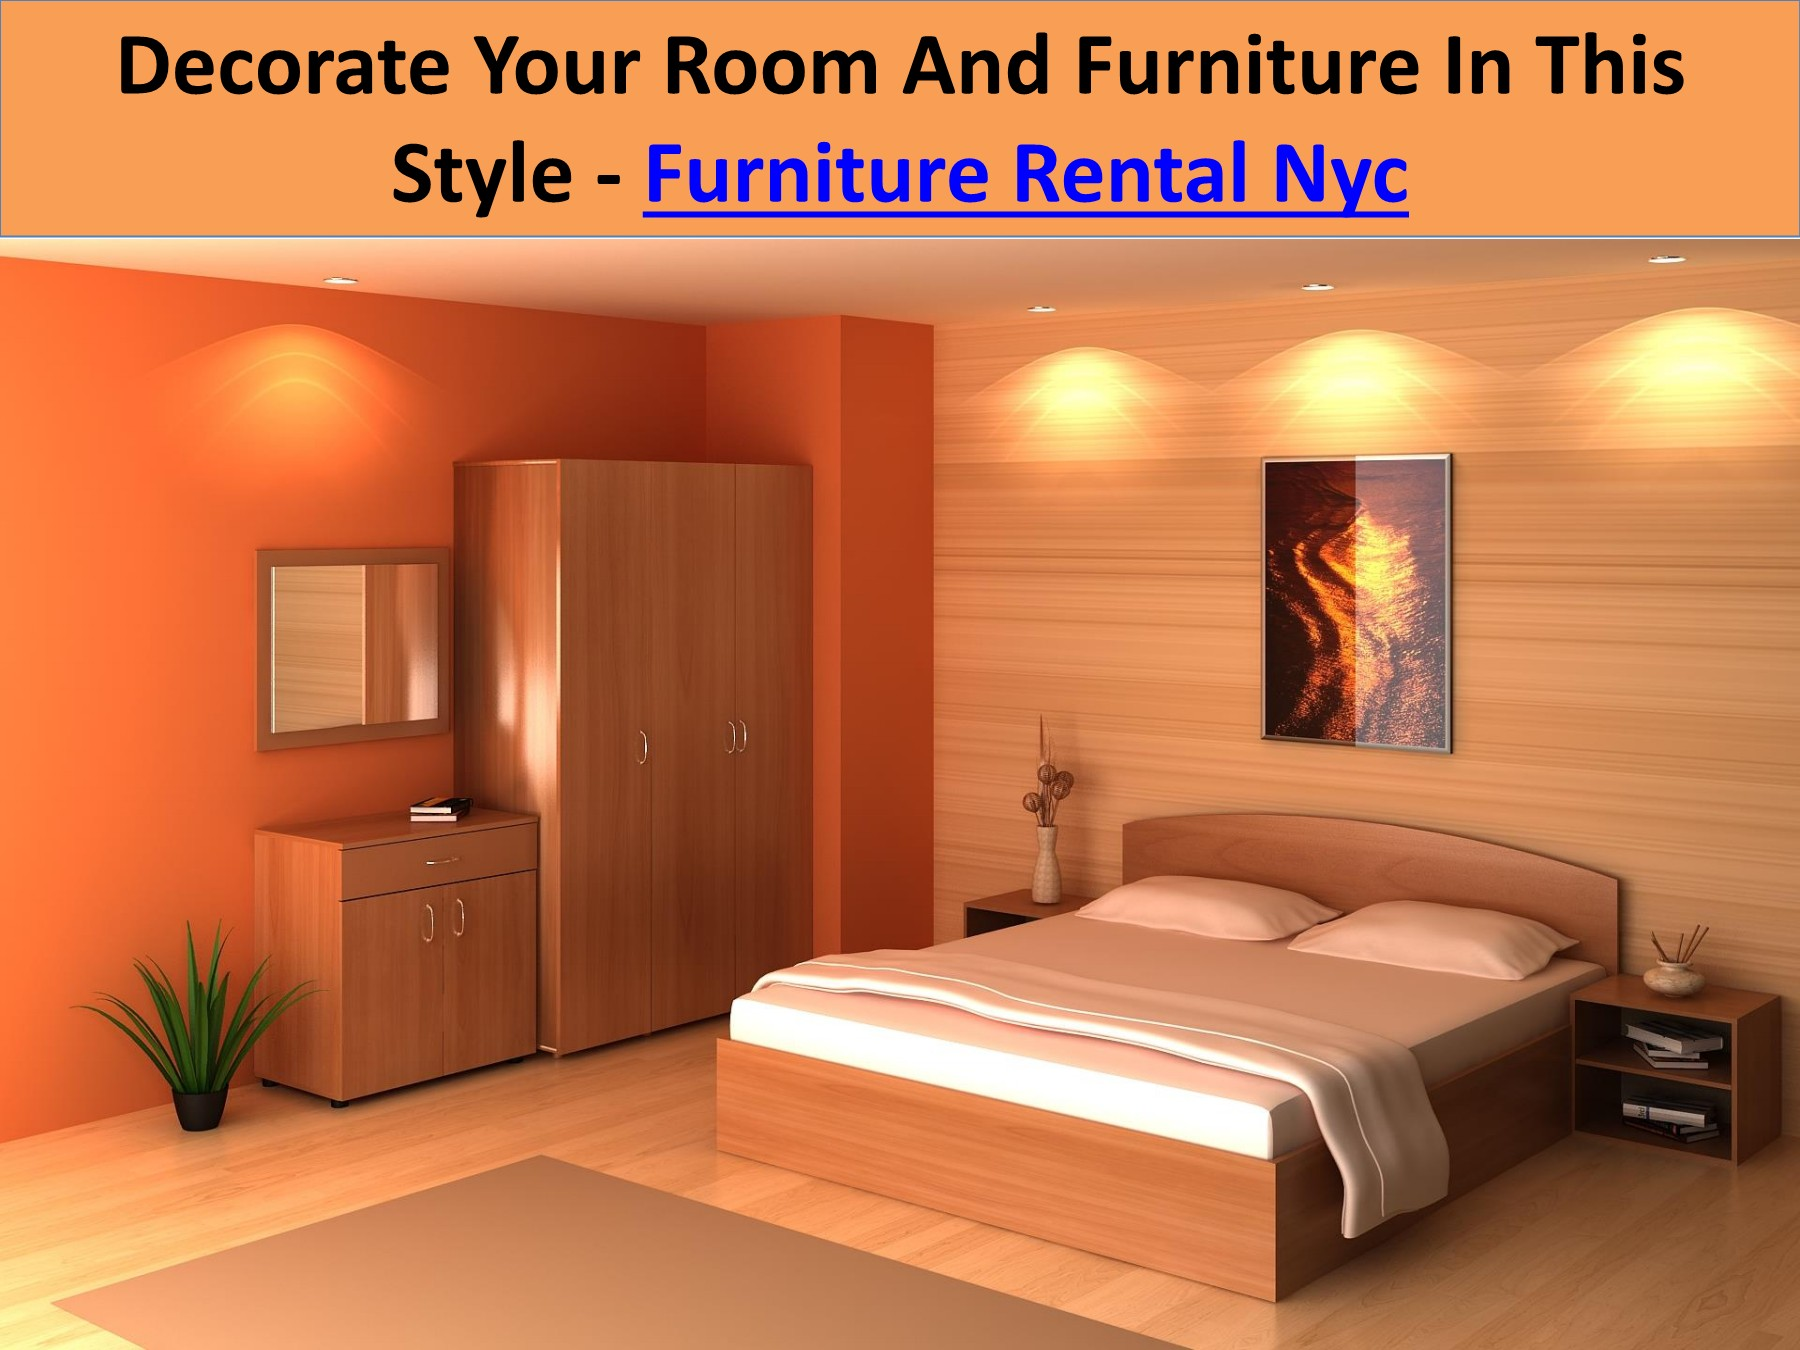 Decorate Your Room And Furniture In This Style Furniture Rental Nyc